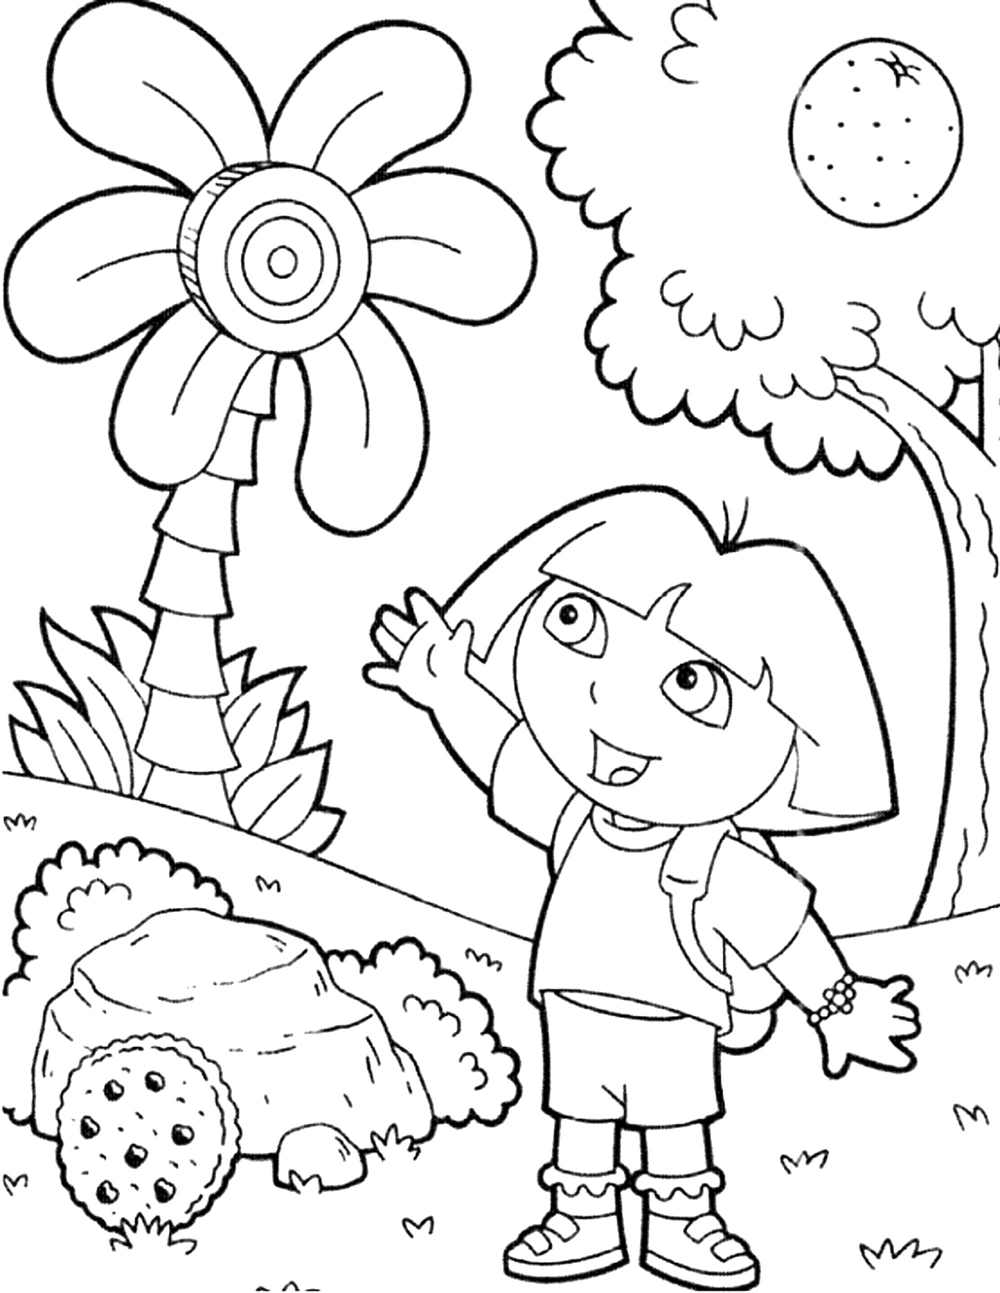 dora colouring pages print download dora coloring pages to learn new things dora colouring pages 1 1